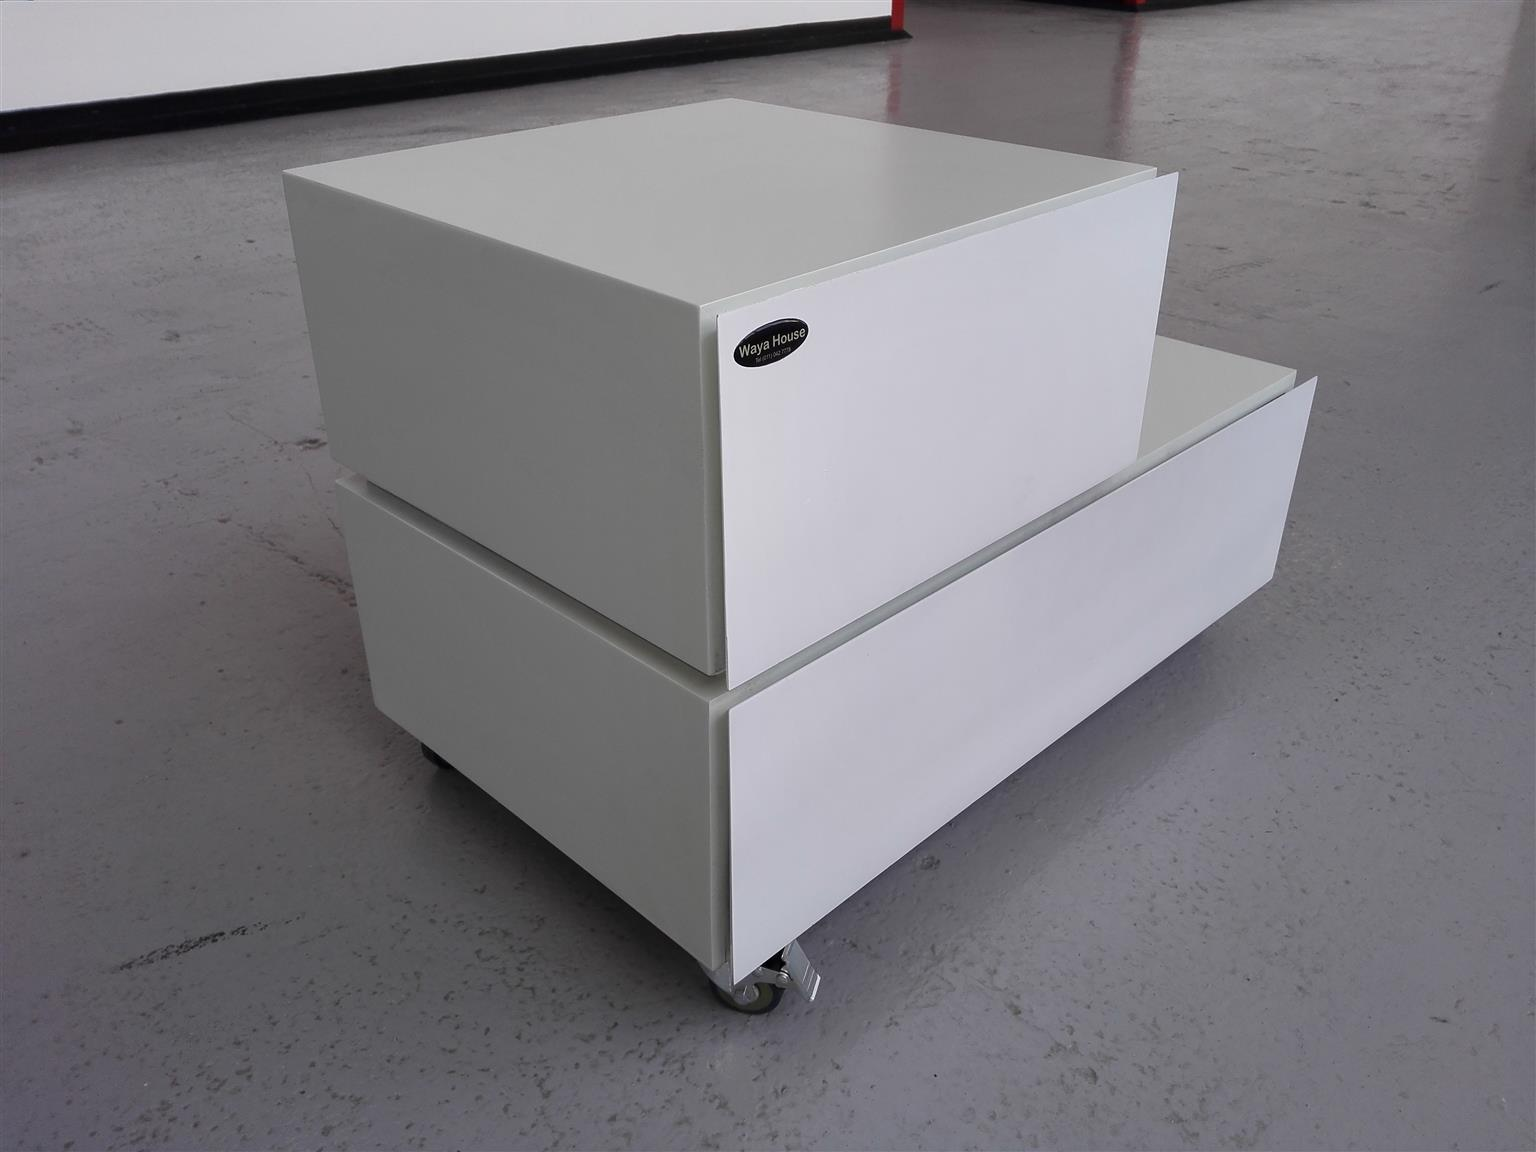 Stepped play bedside drawers